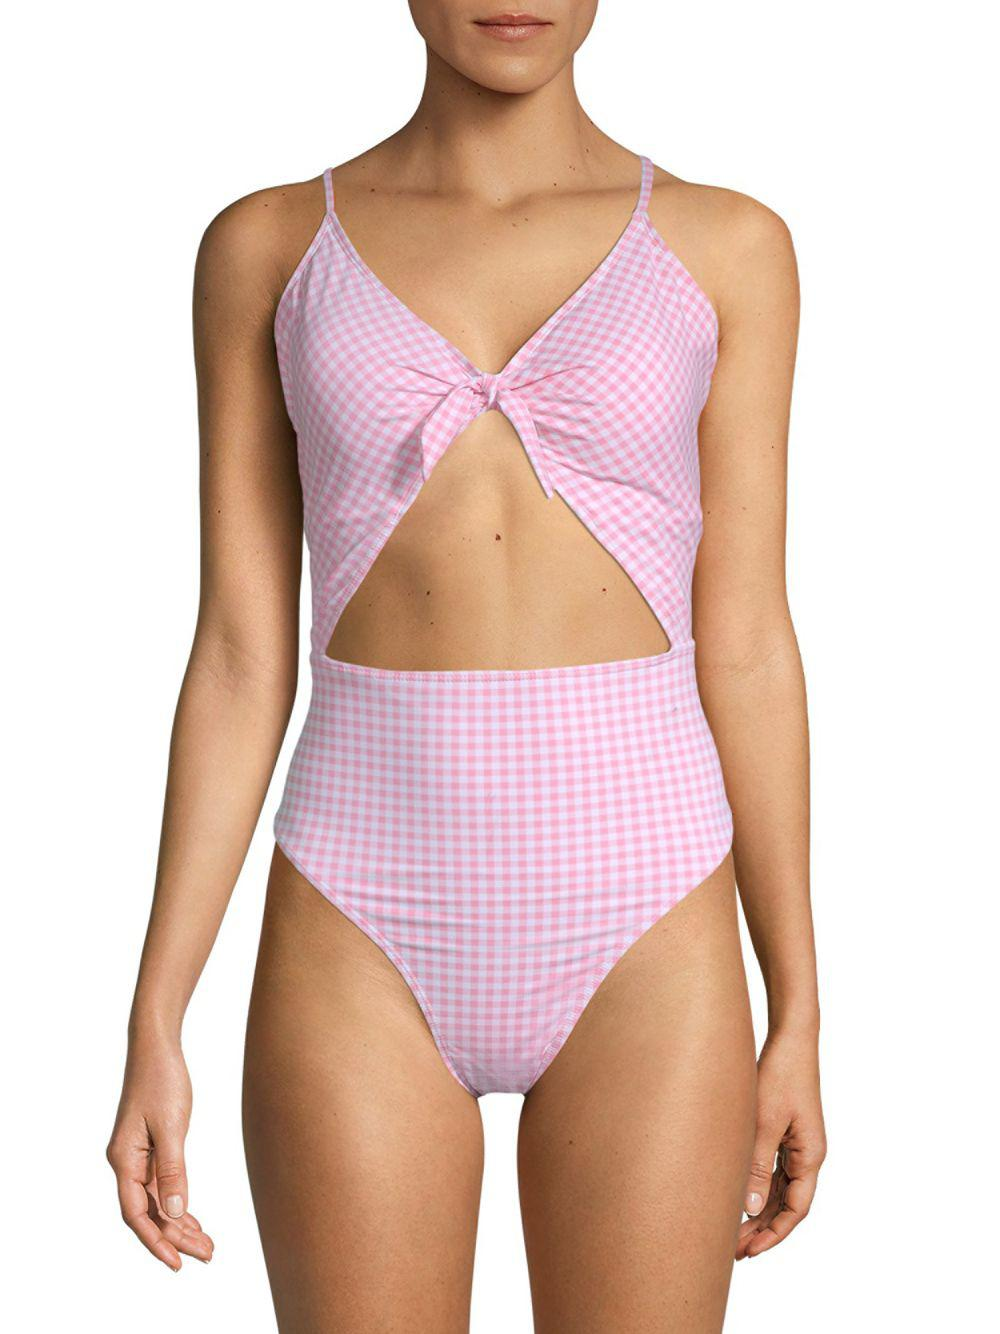 4deeca9cdd Juicy Couture Cut Out One-piece Printed Swimsuit in Purple - Lyst